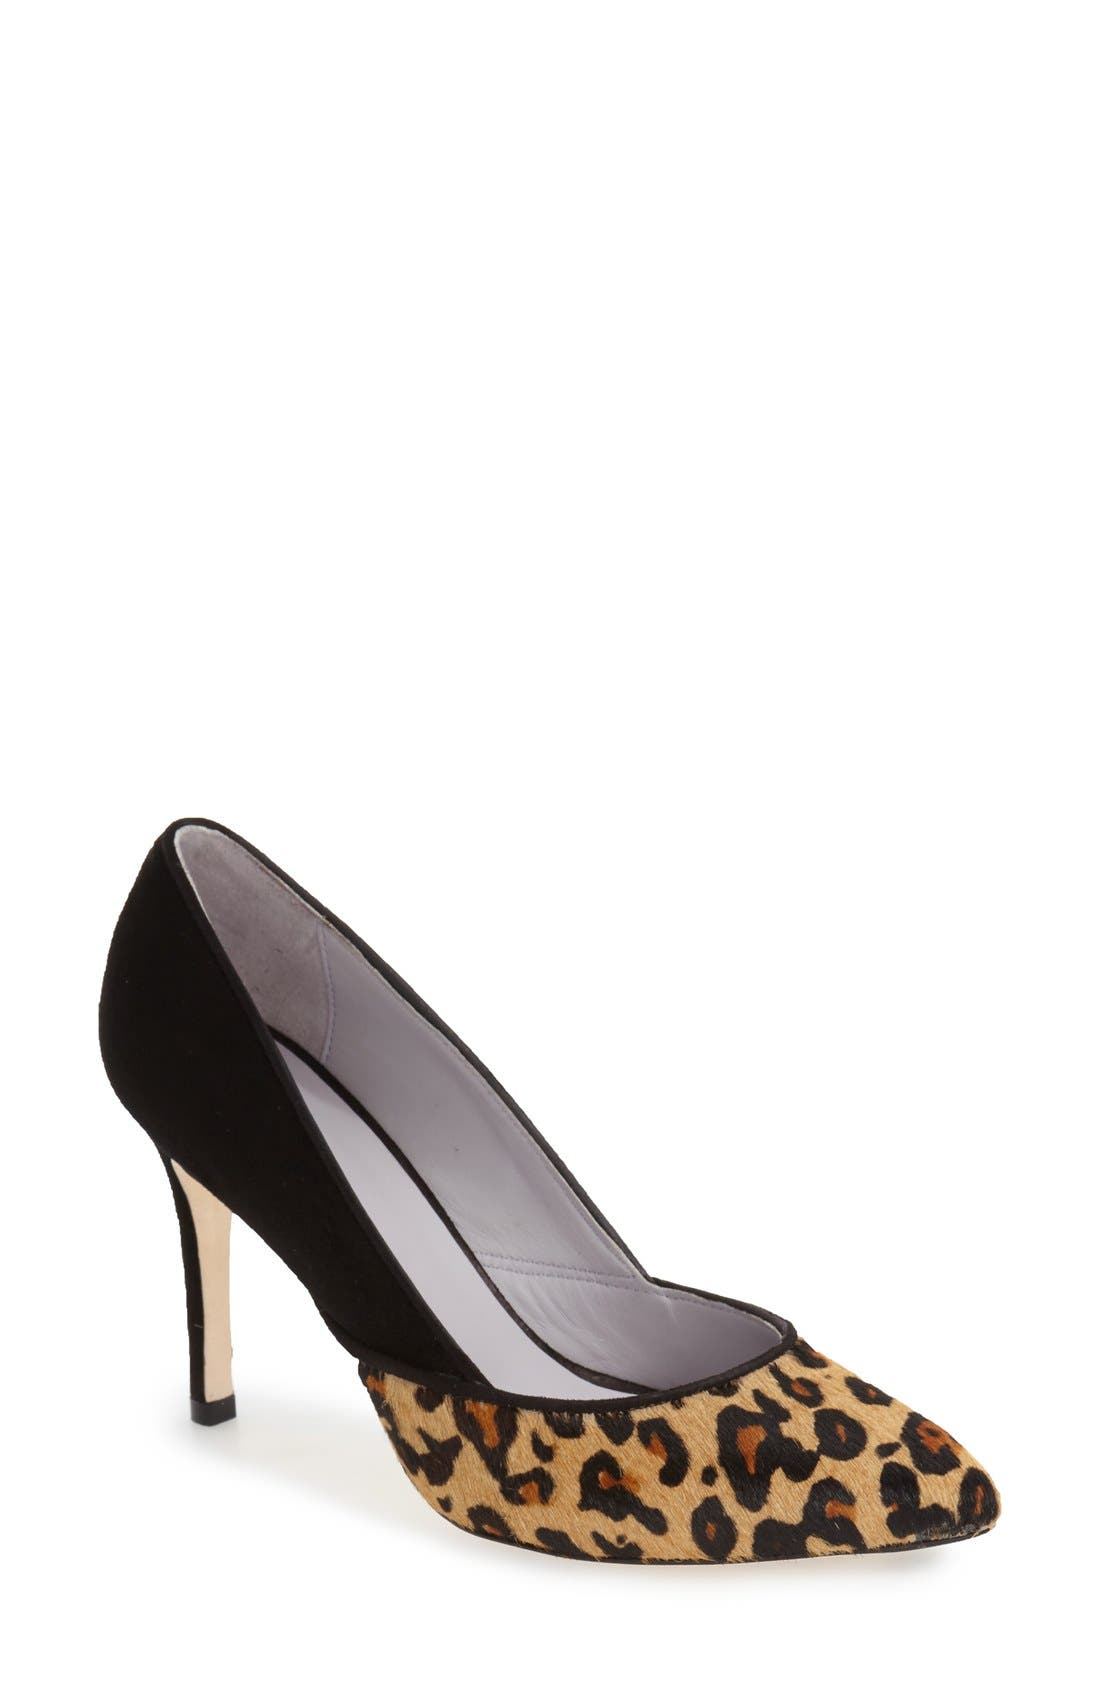 'Vanessa' Pointy Toe Leather Pump,                             Main thumbnail 2, color,